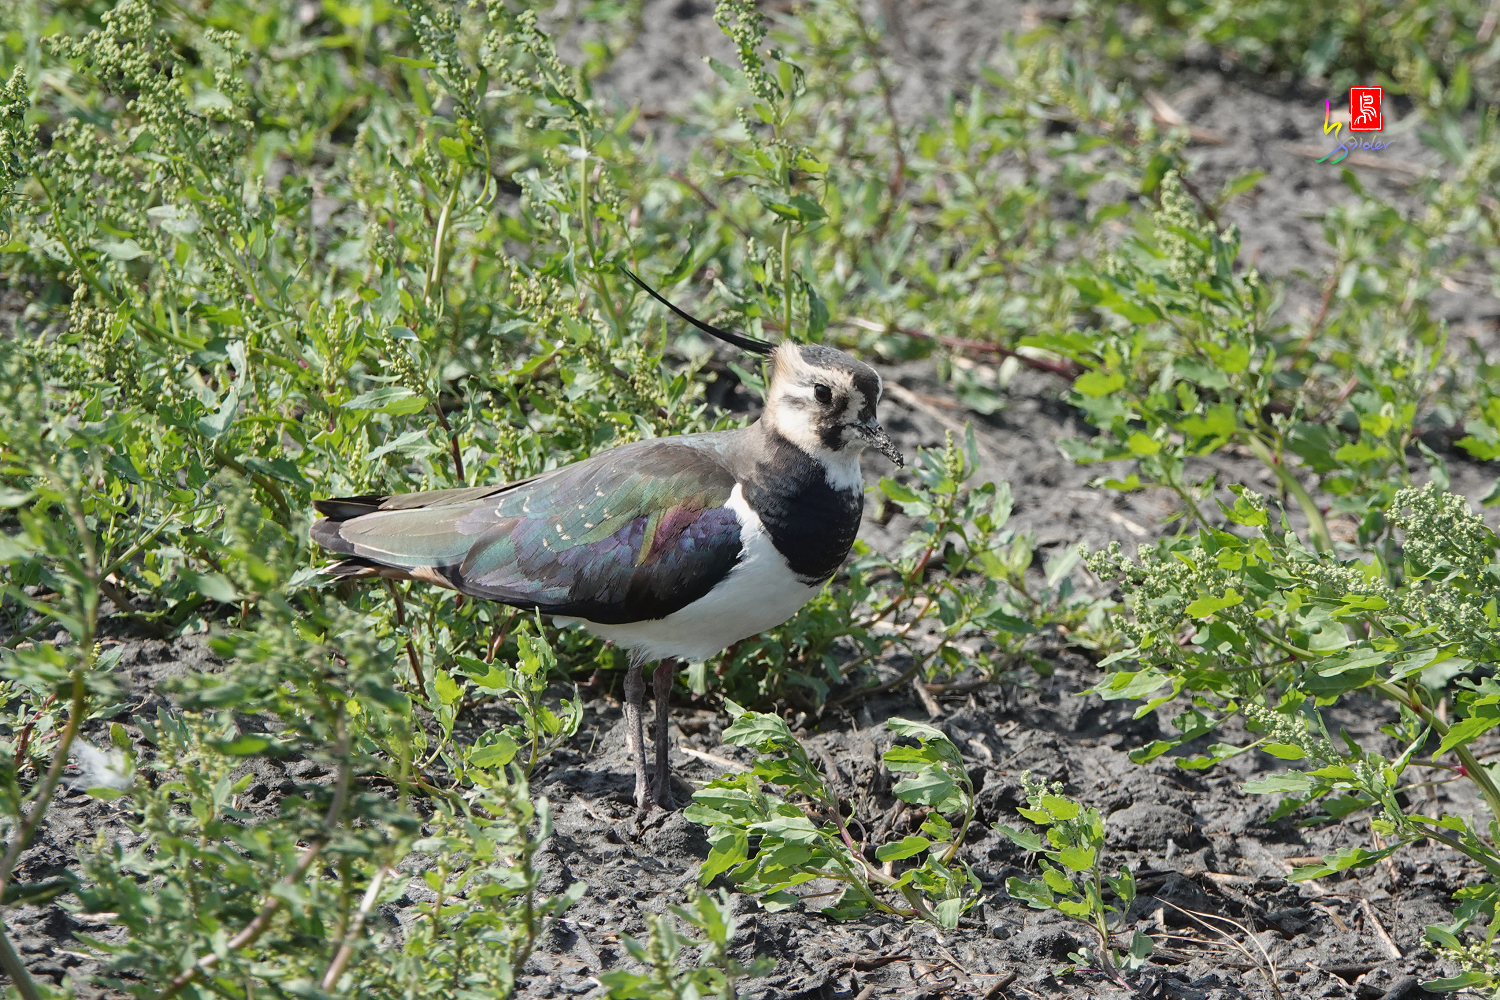 Nprthern_Lapwing08719